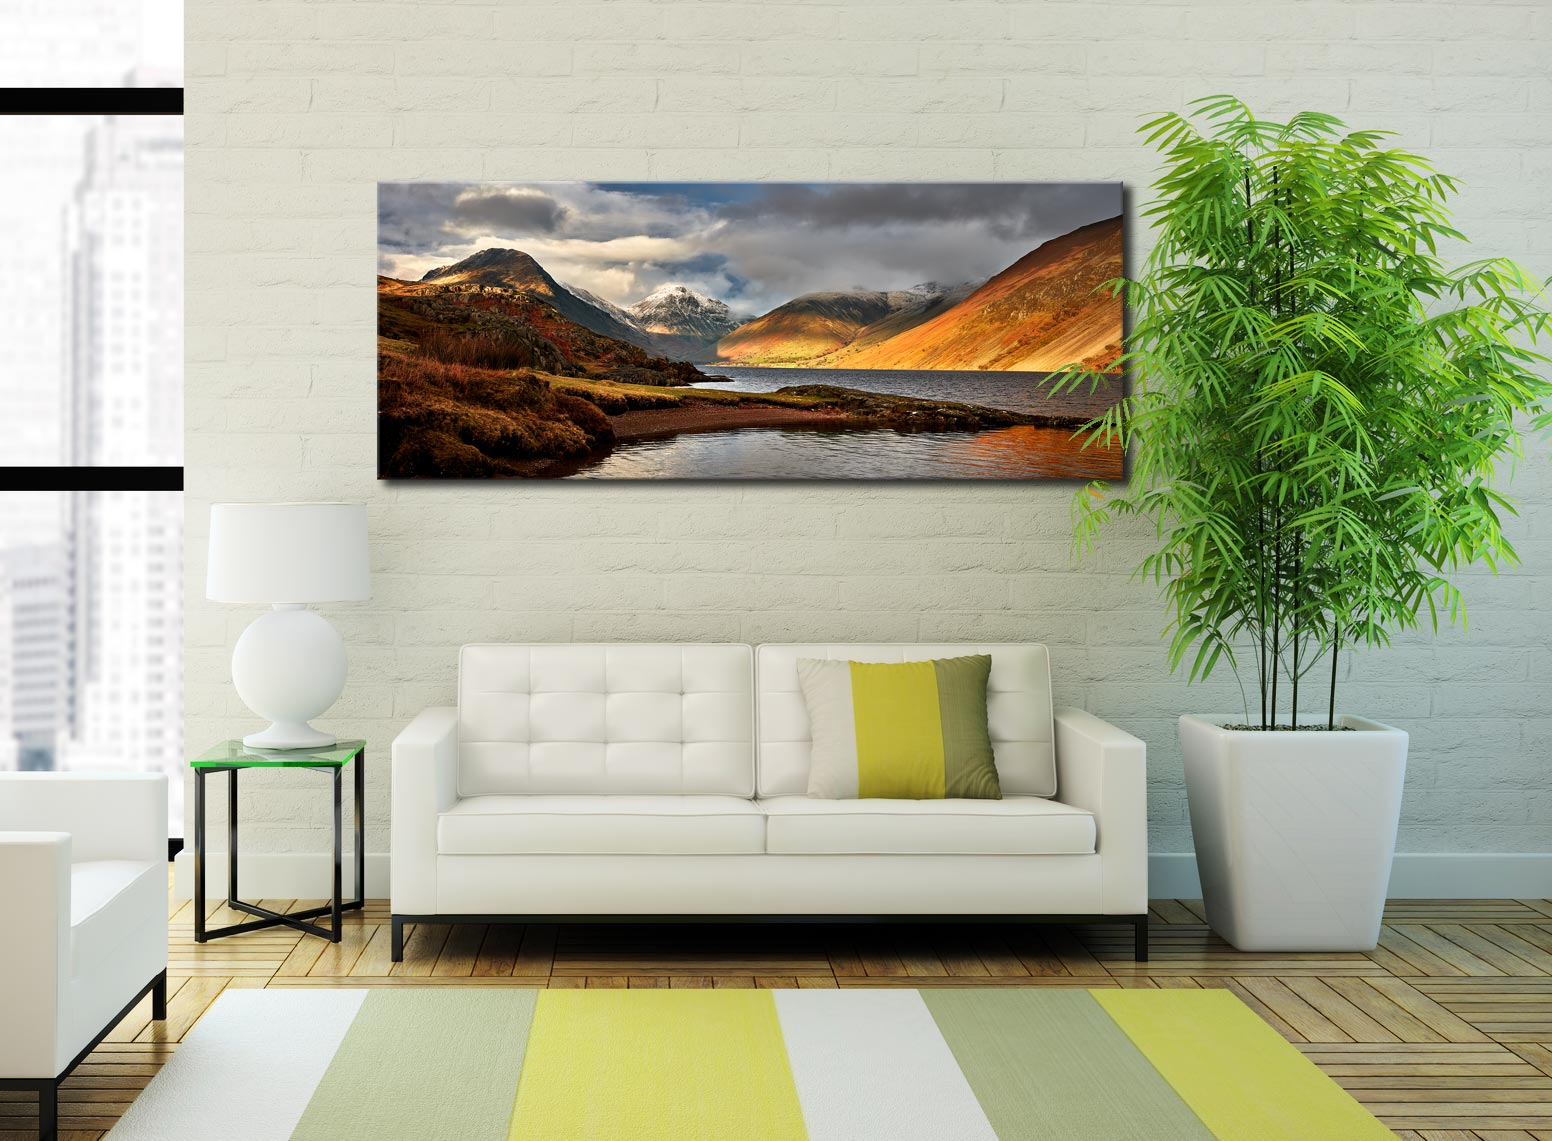 Glorious Wast Water - Print Aluminium Backing With Acrylic Glazing on Wall